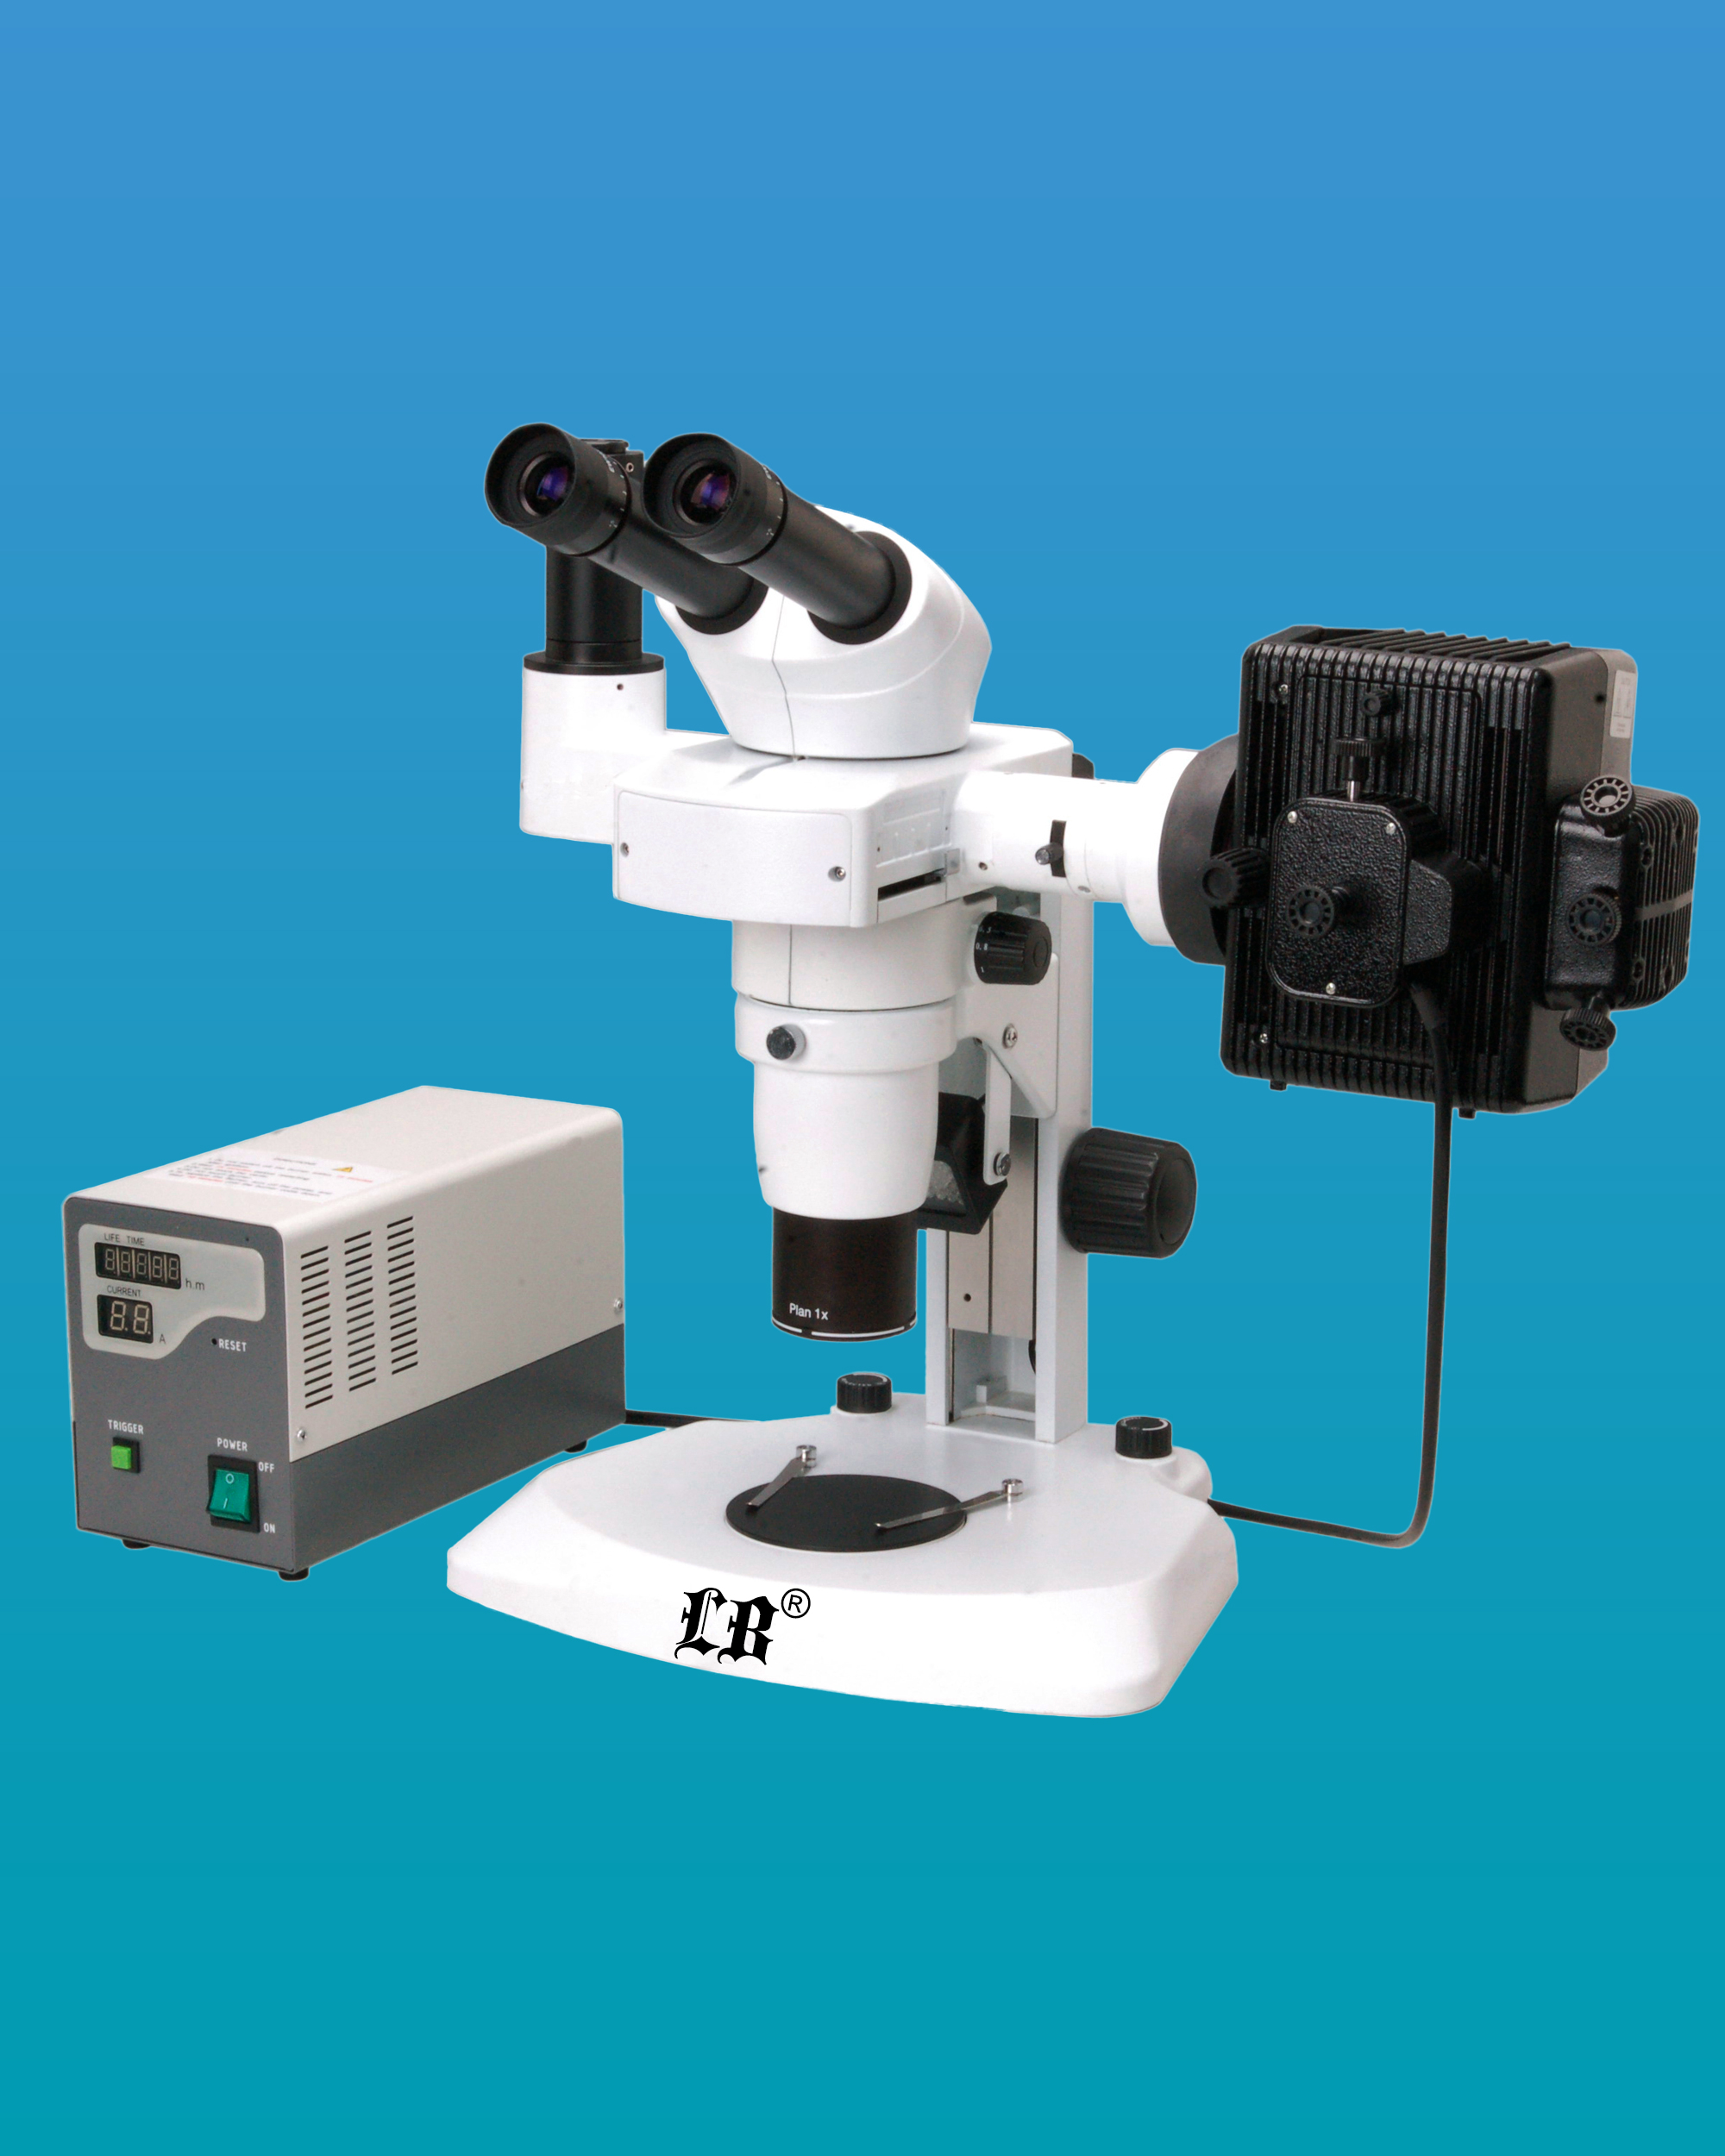 [LB-367] Binocular Zoom Fluorescent Stereo Microscope w/ Infinite Parallel Zoom Optical System & LED Illumination